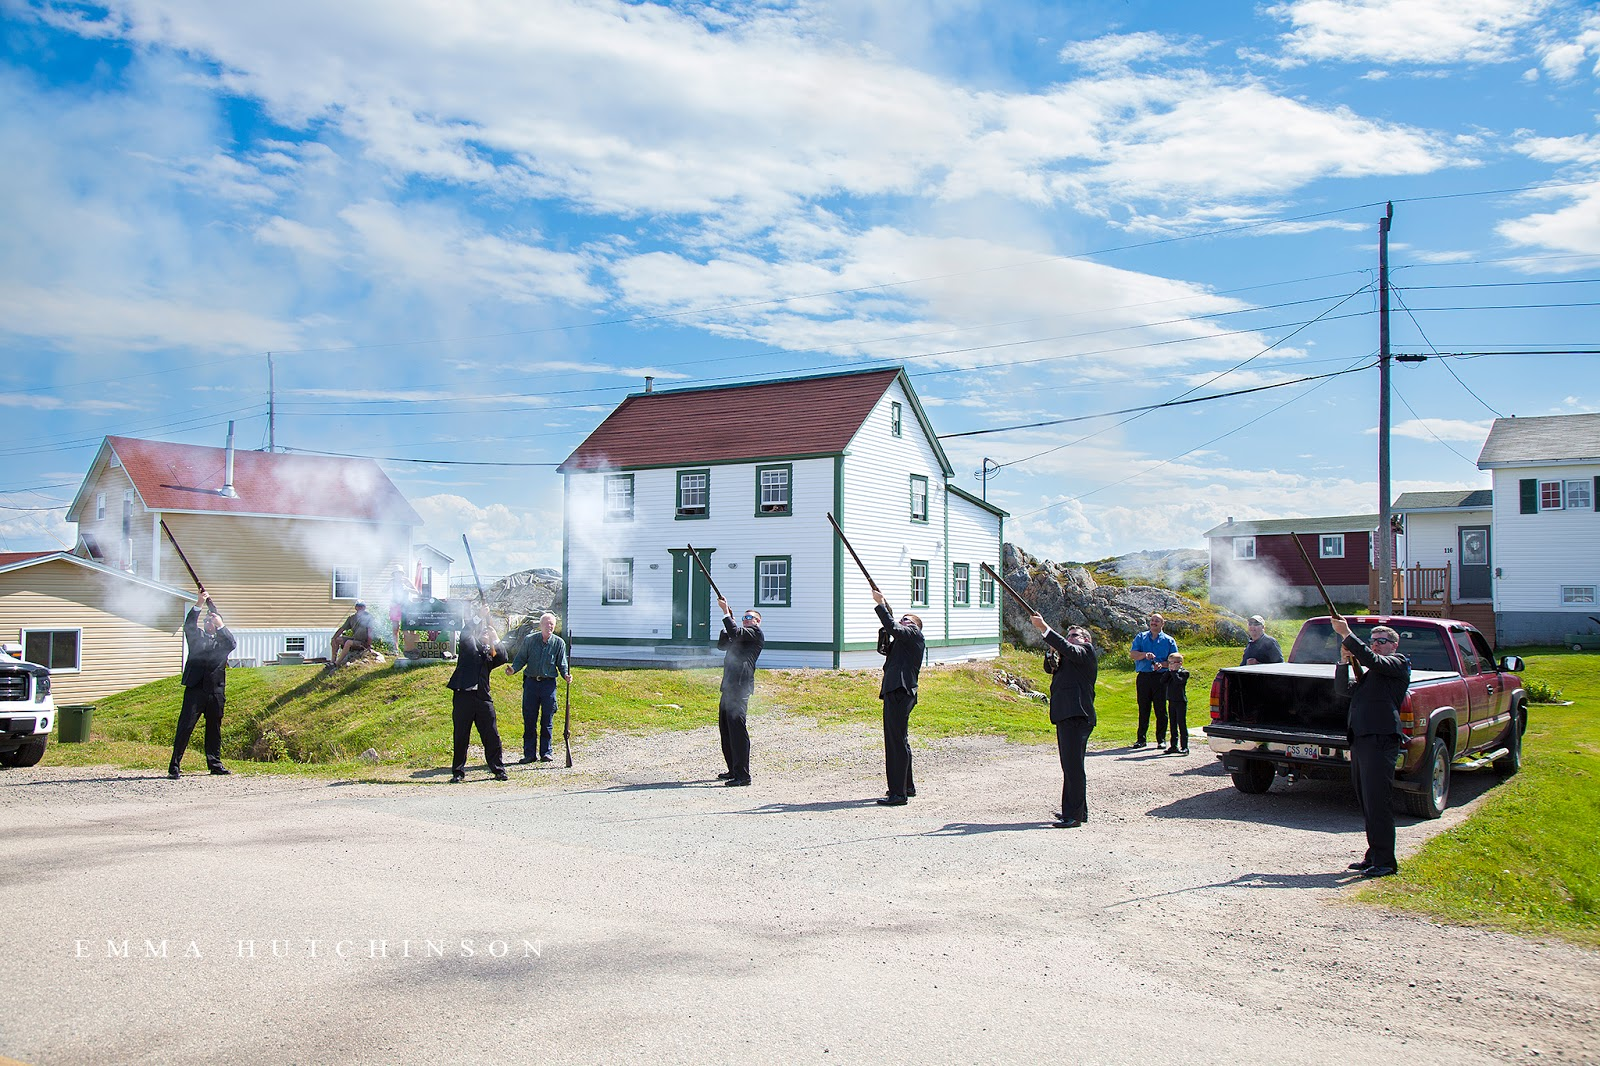 Weddings in Tilting, Fogo Island - The Groom shooting a gun after the Ceremony is a Tilting wedding tradition